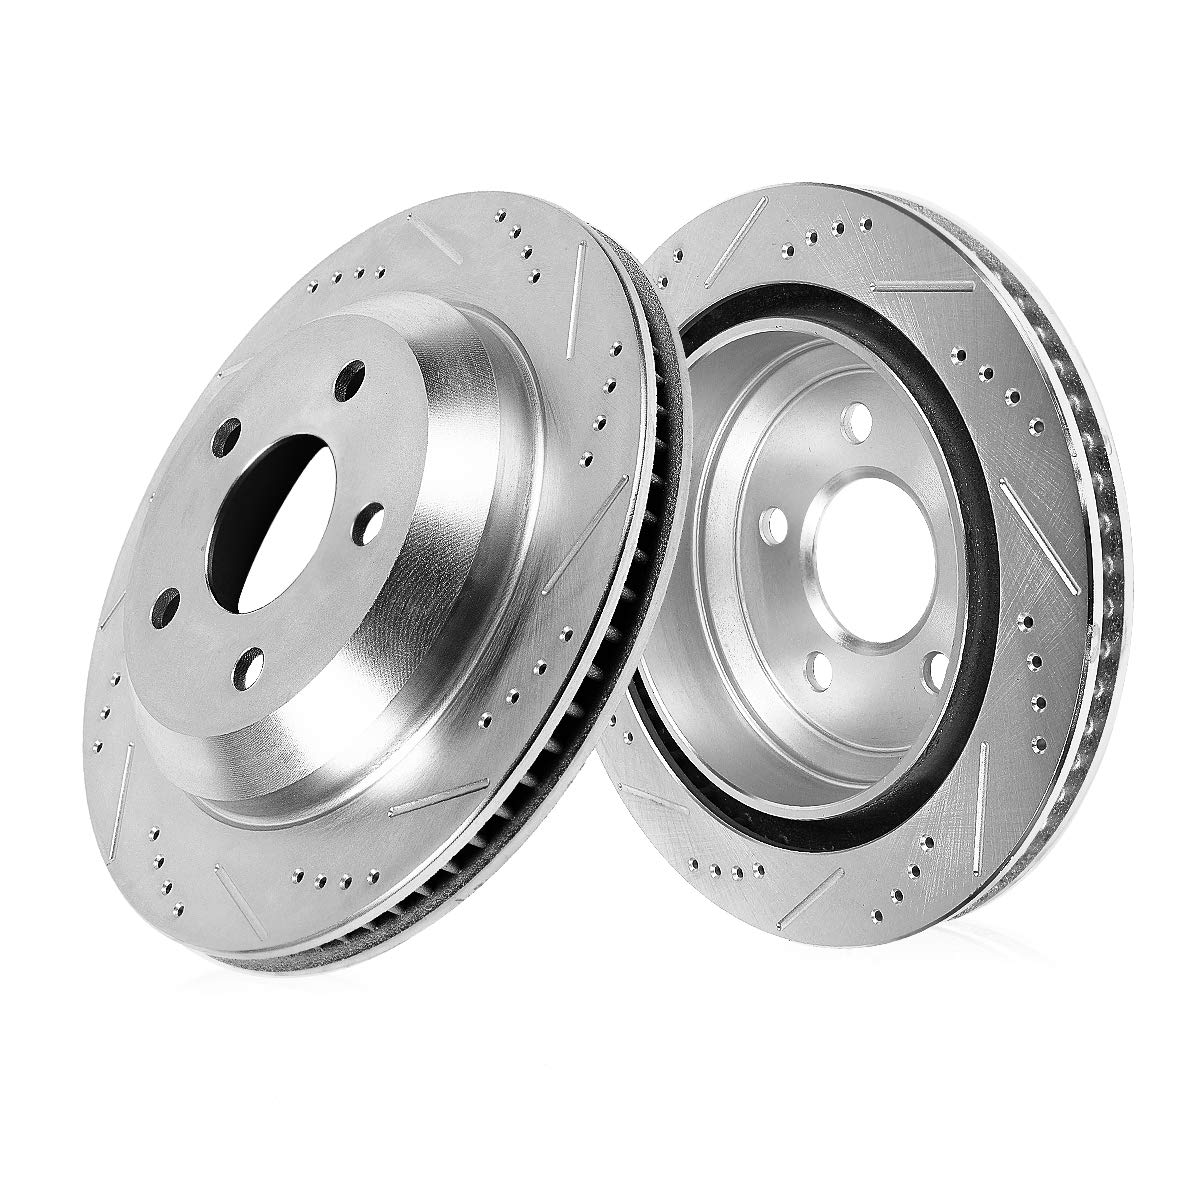 Front Drilled /& Slotted Brake Rotors For 2011-2015 BMW X3 2015 BMW X4